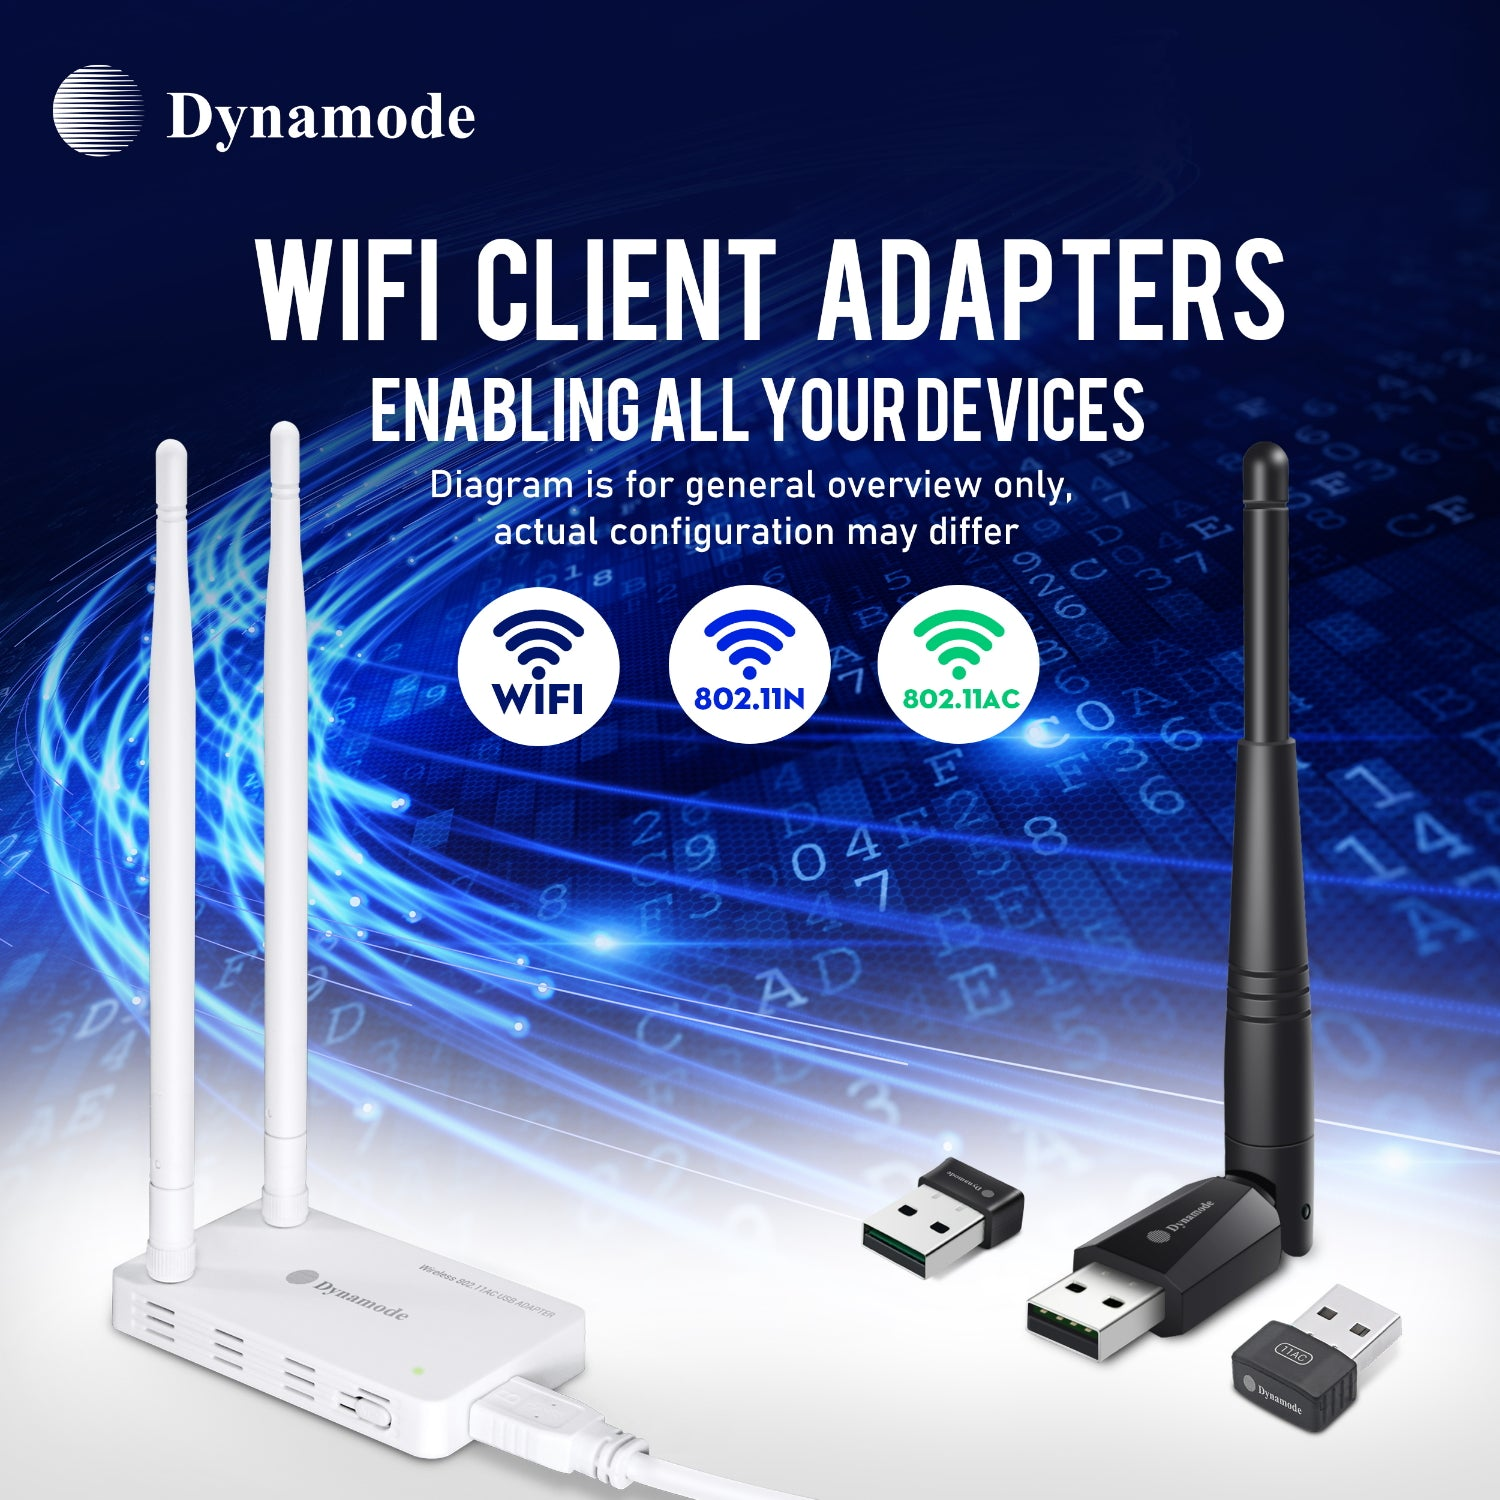 Dynamode WL-700N-DB-300 300Mbps WiFi Adapter